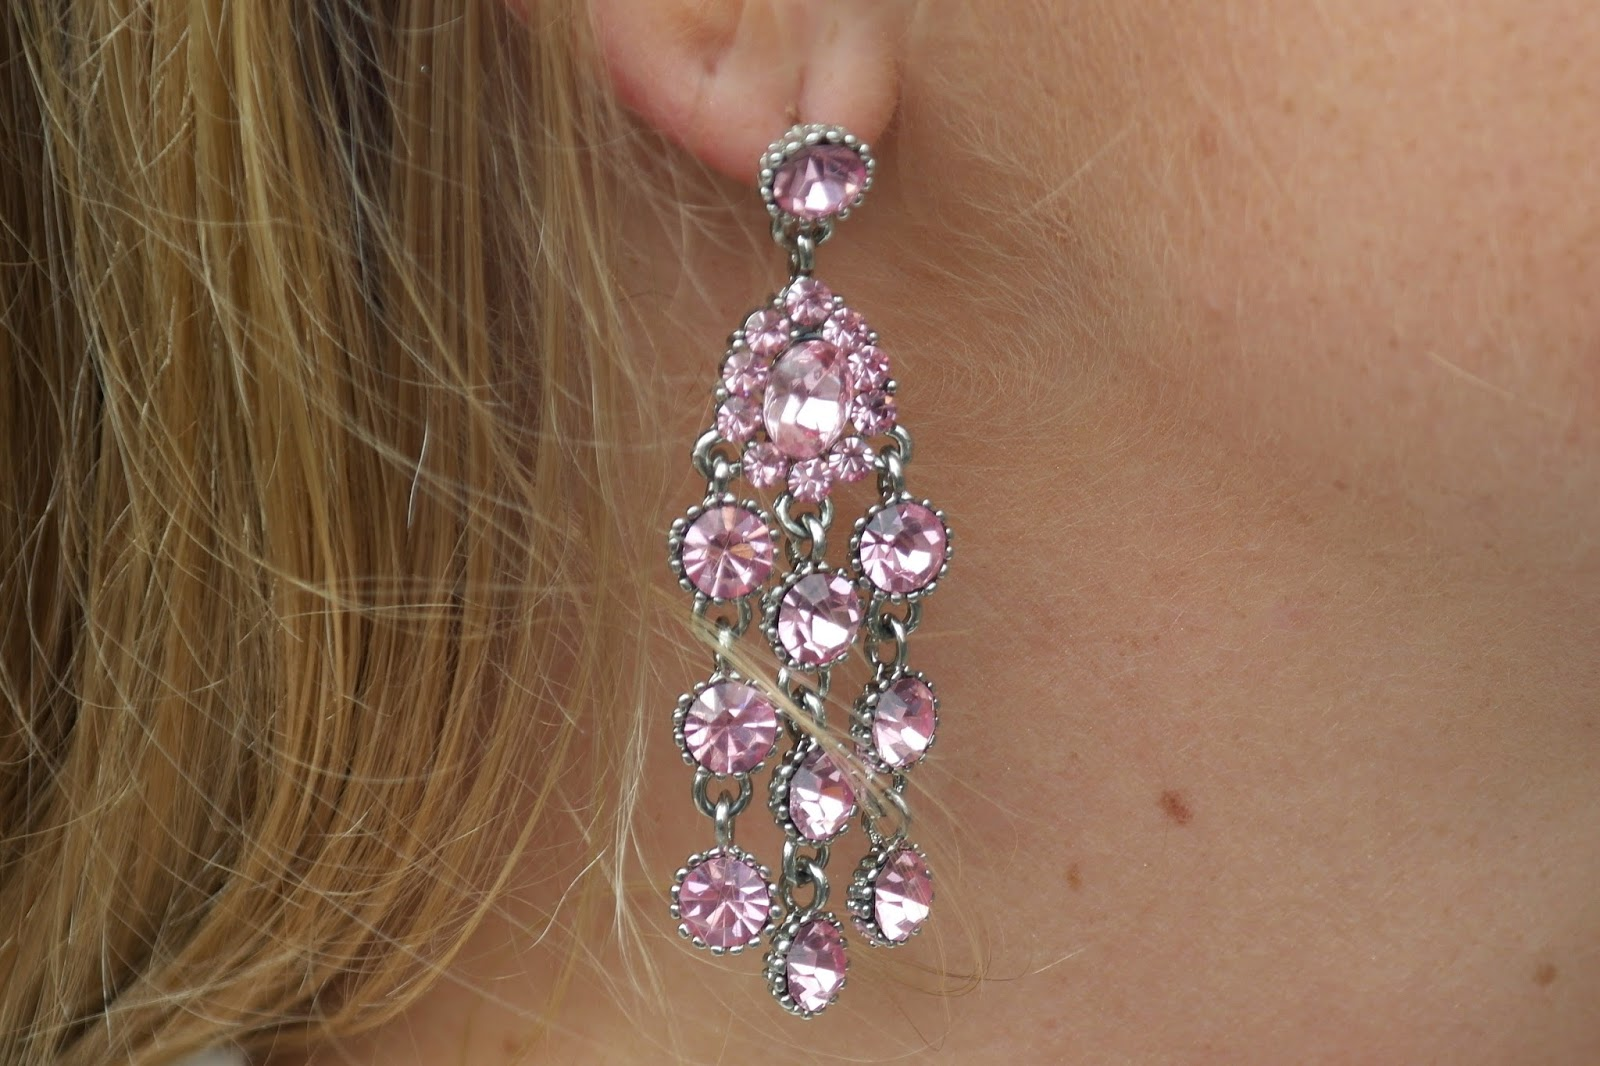 Glitzy Secrets earrings